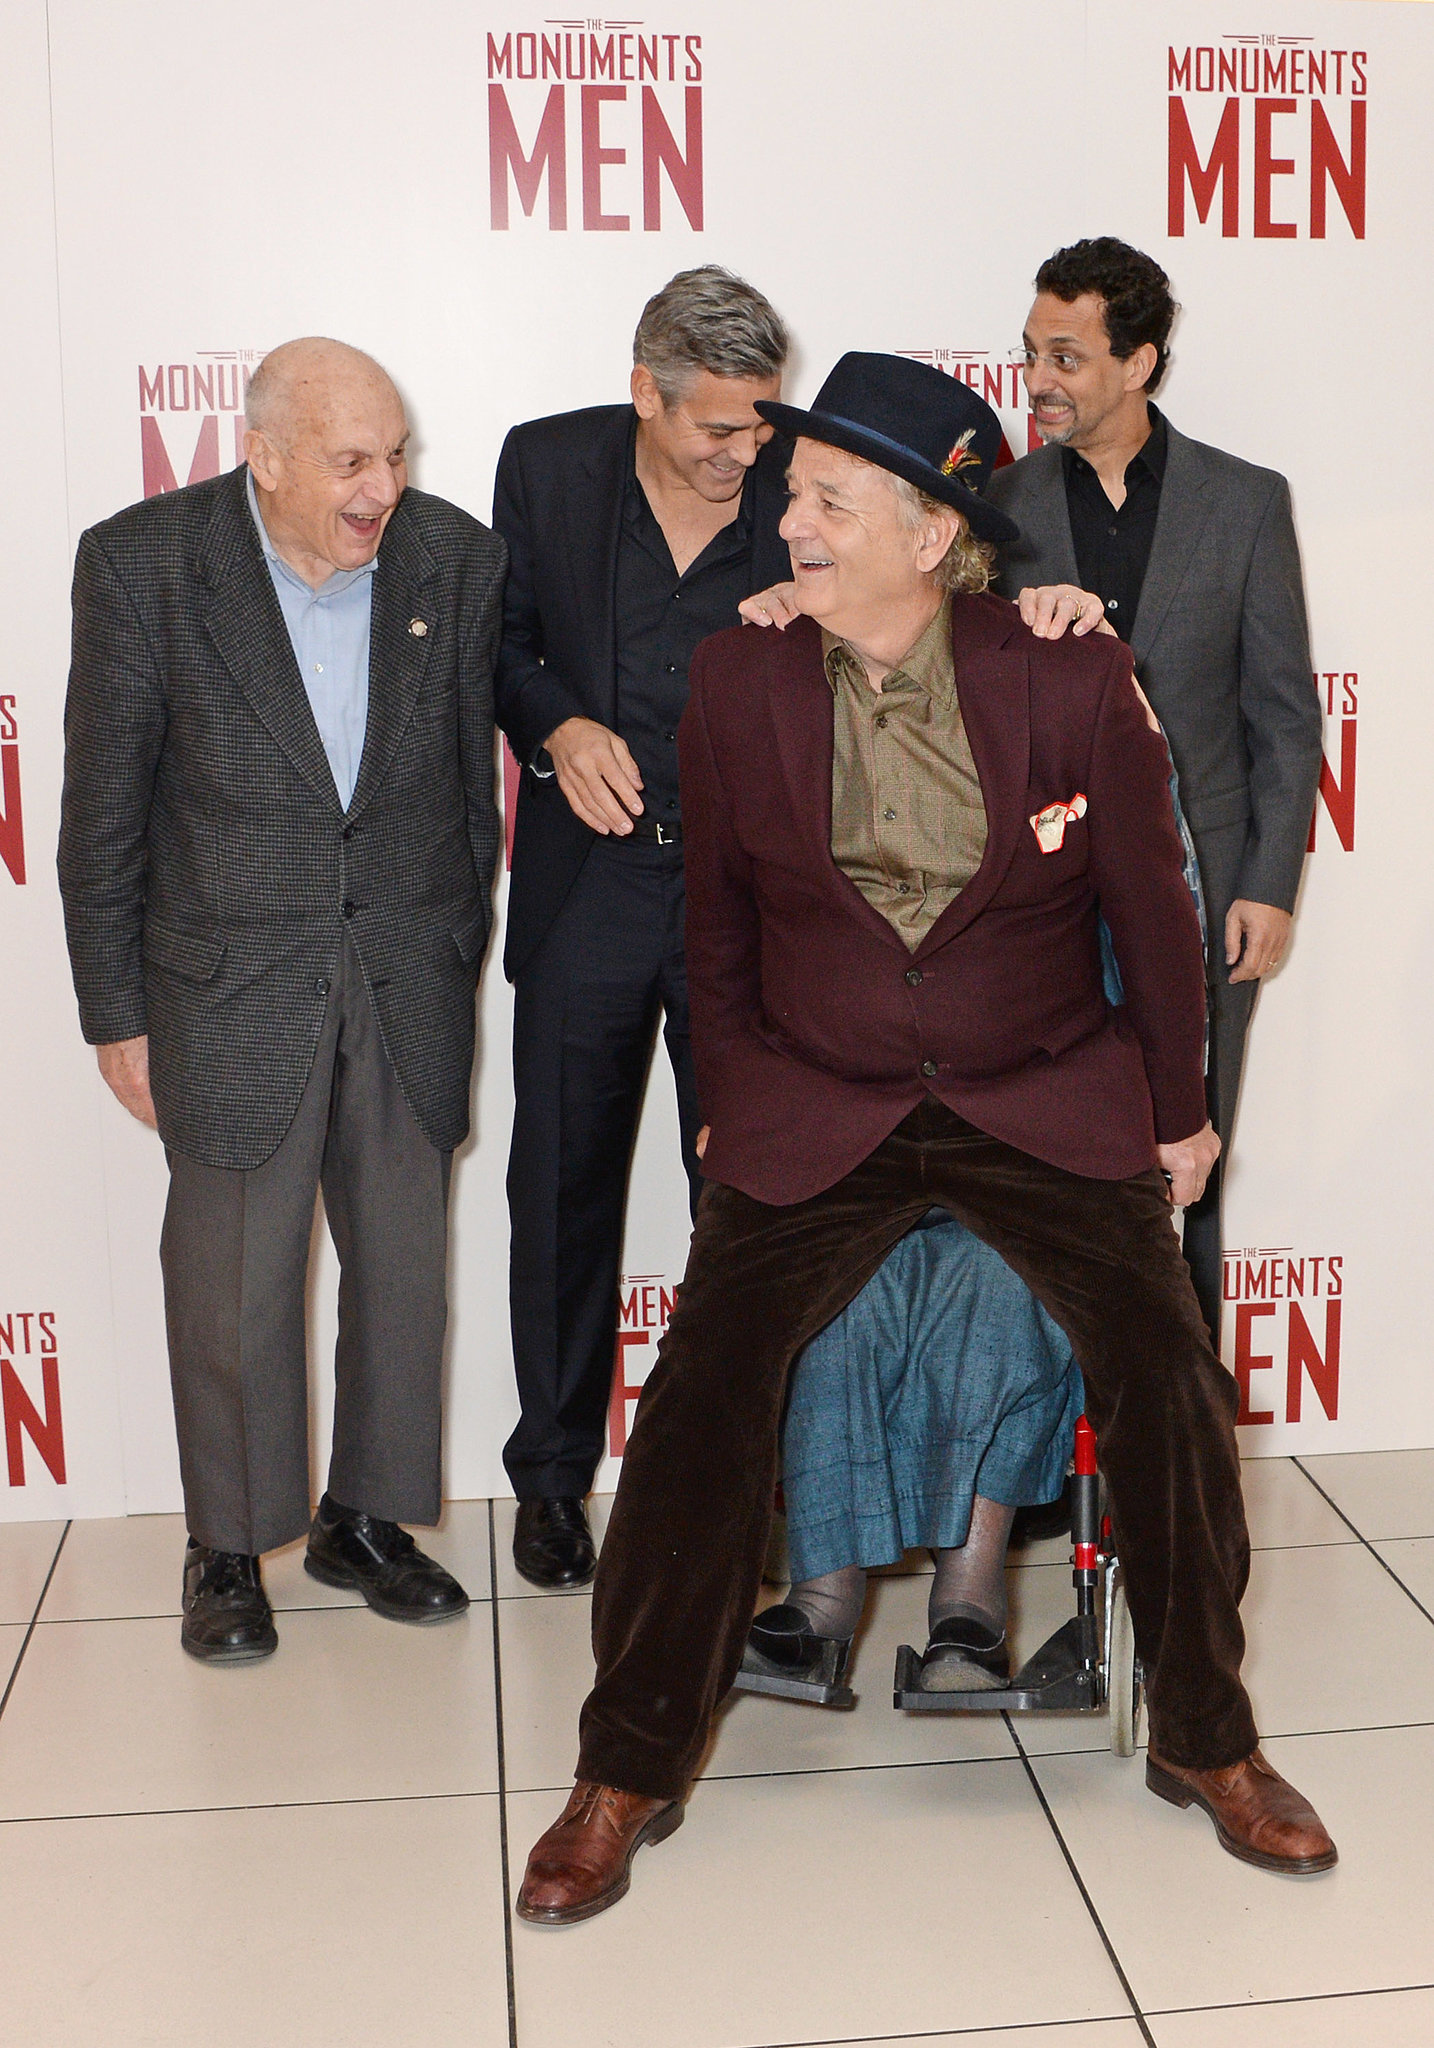 "Then he twerked on a surviving ""monuments man,"" who was in a wheelchair."